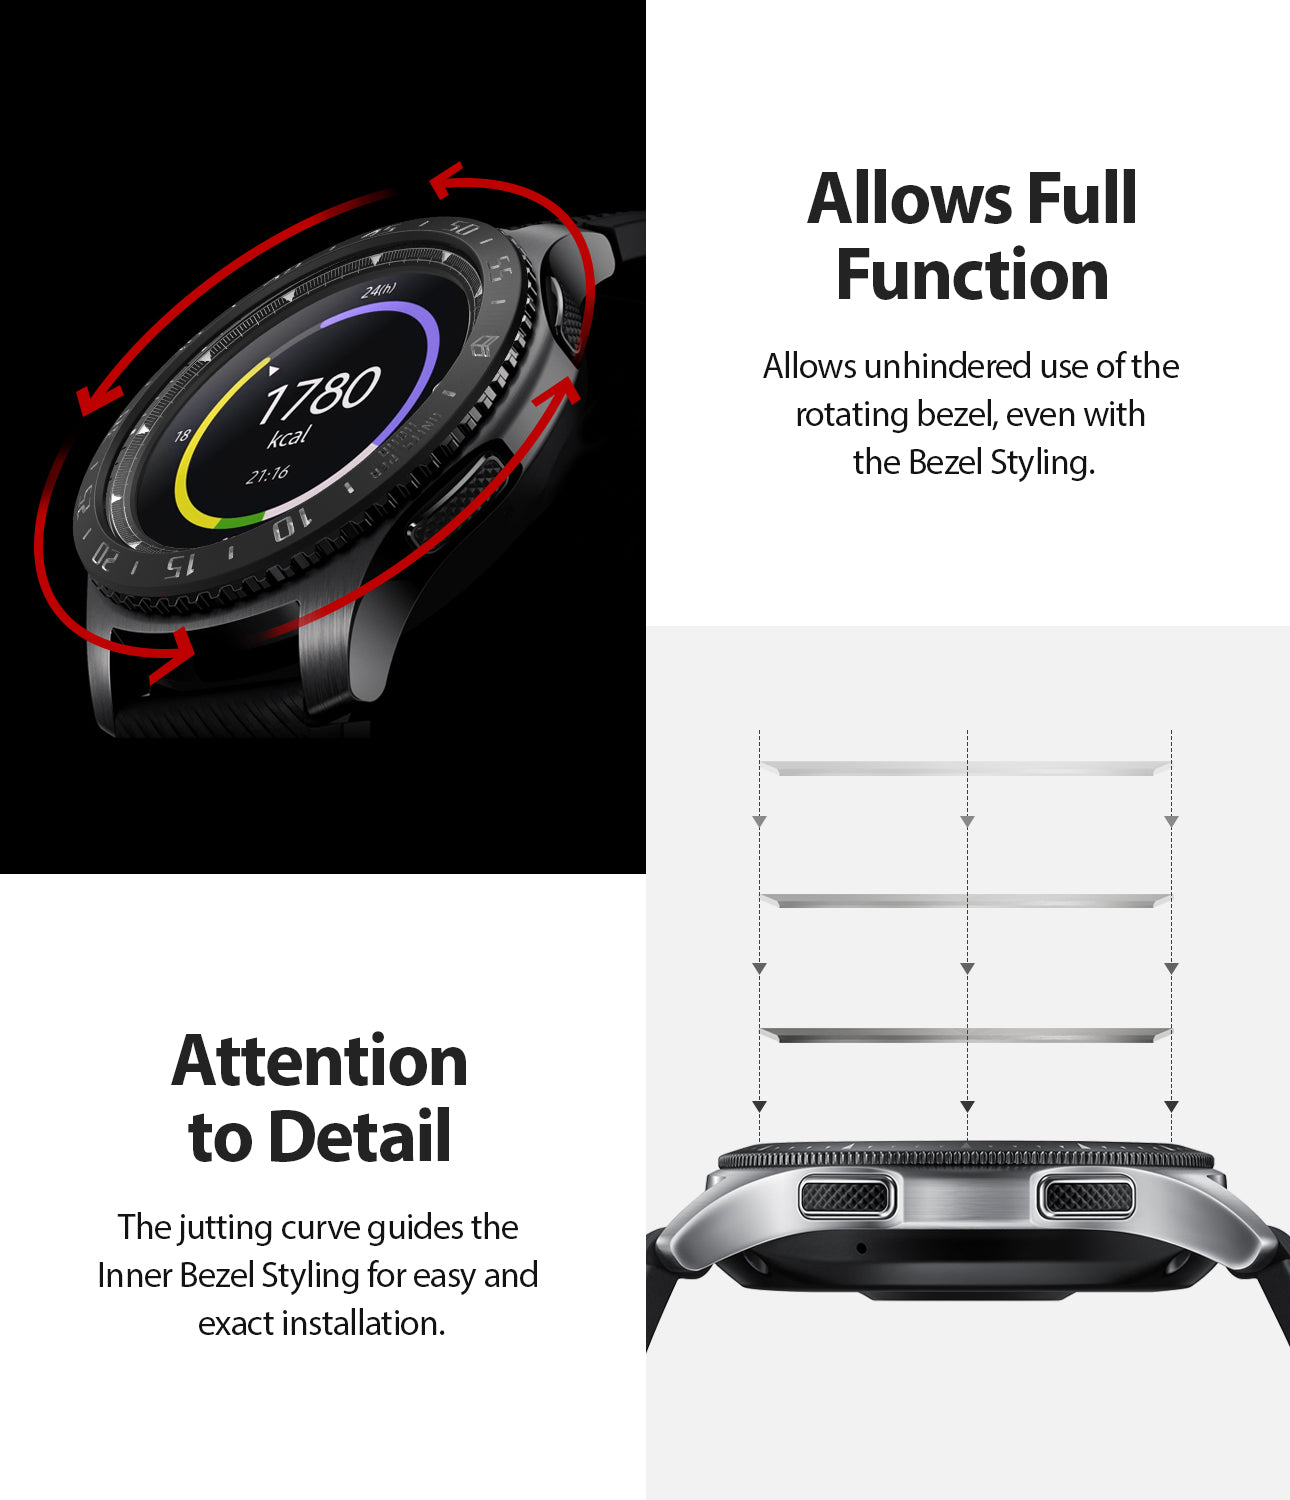 ringke inner bezel styling for samsung galaxy watch 46mm, gear s3 frontier, and gear s3 classic, 46-inner-02, stainless steel, attention to detail